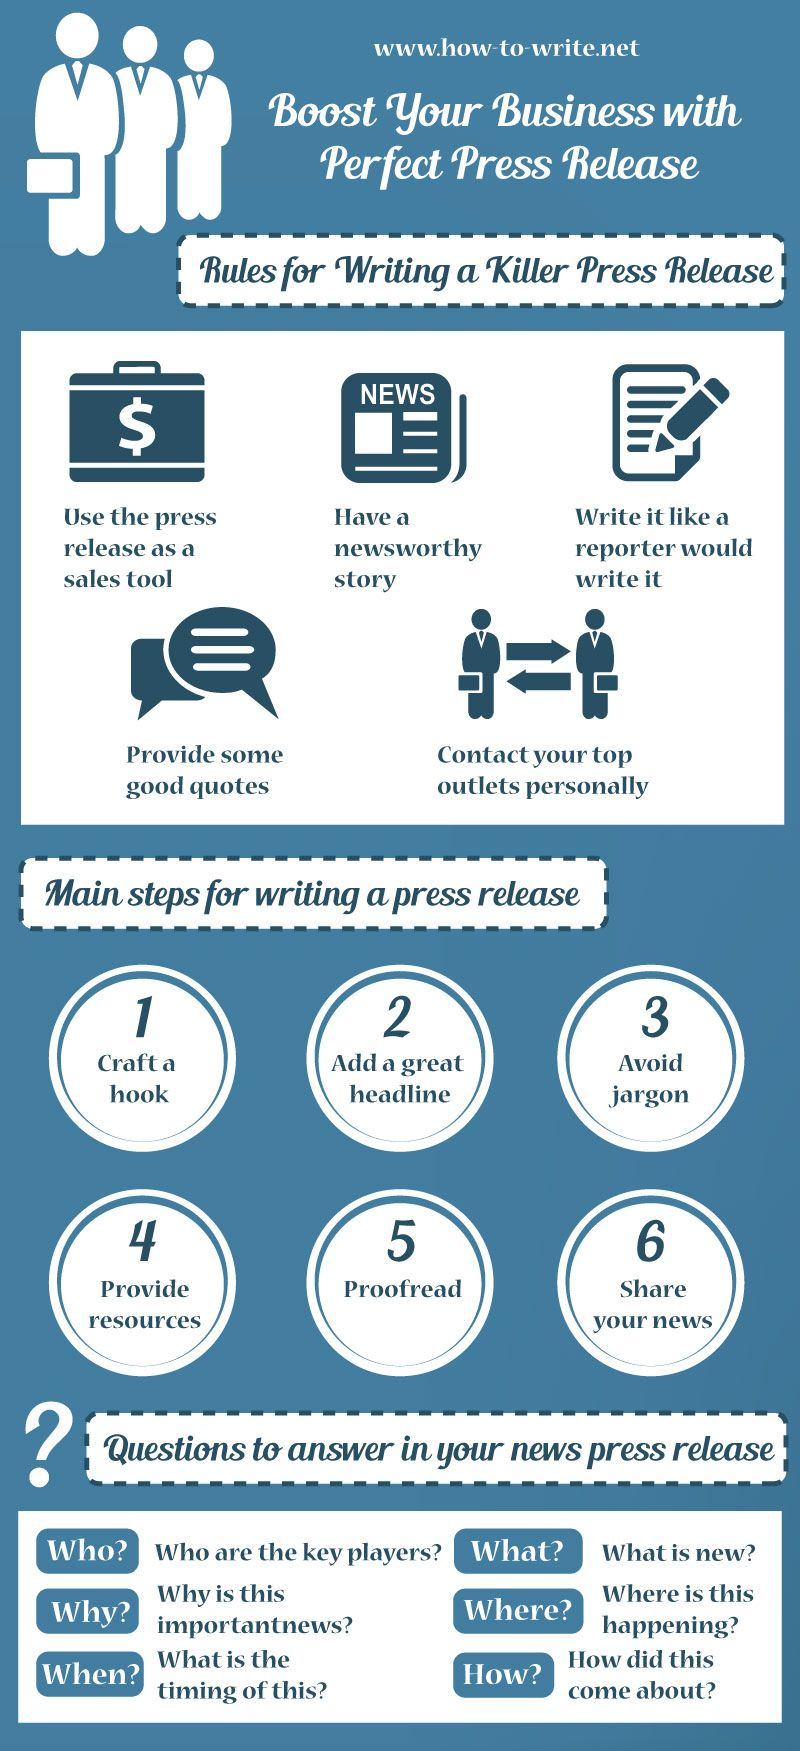 http://www.how-to-write.net/how-to-write-a-press-release-that-will ...